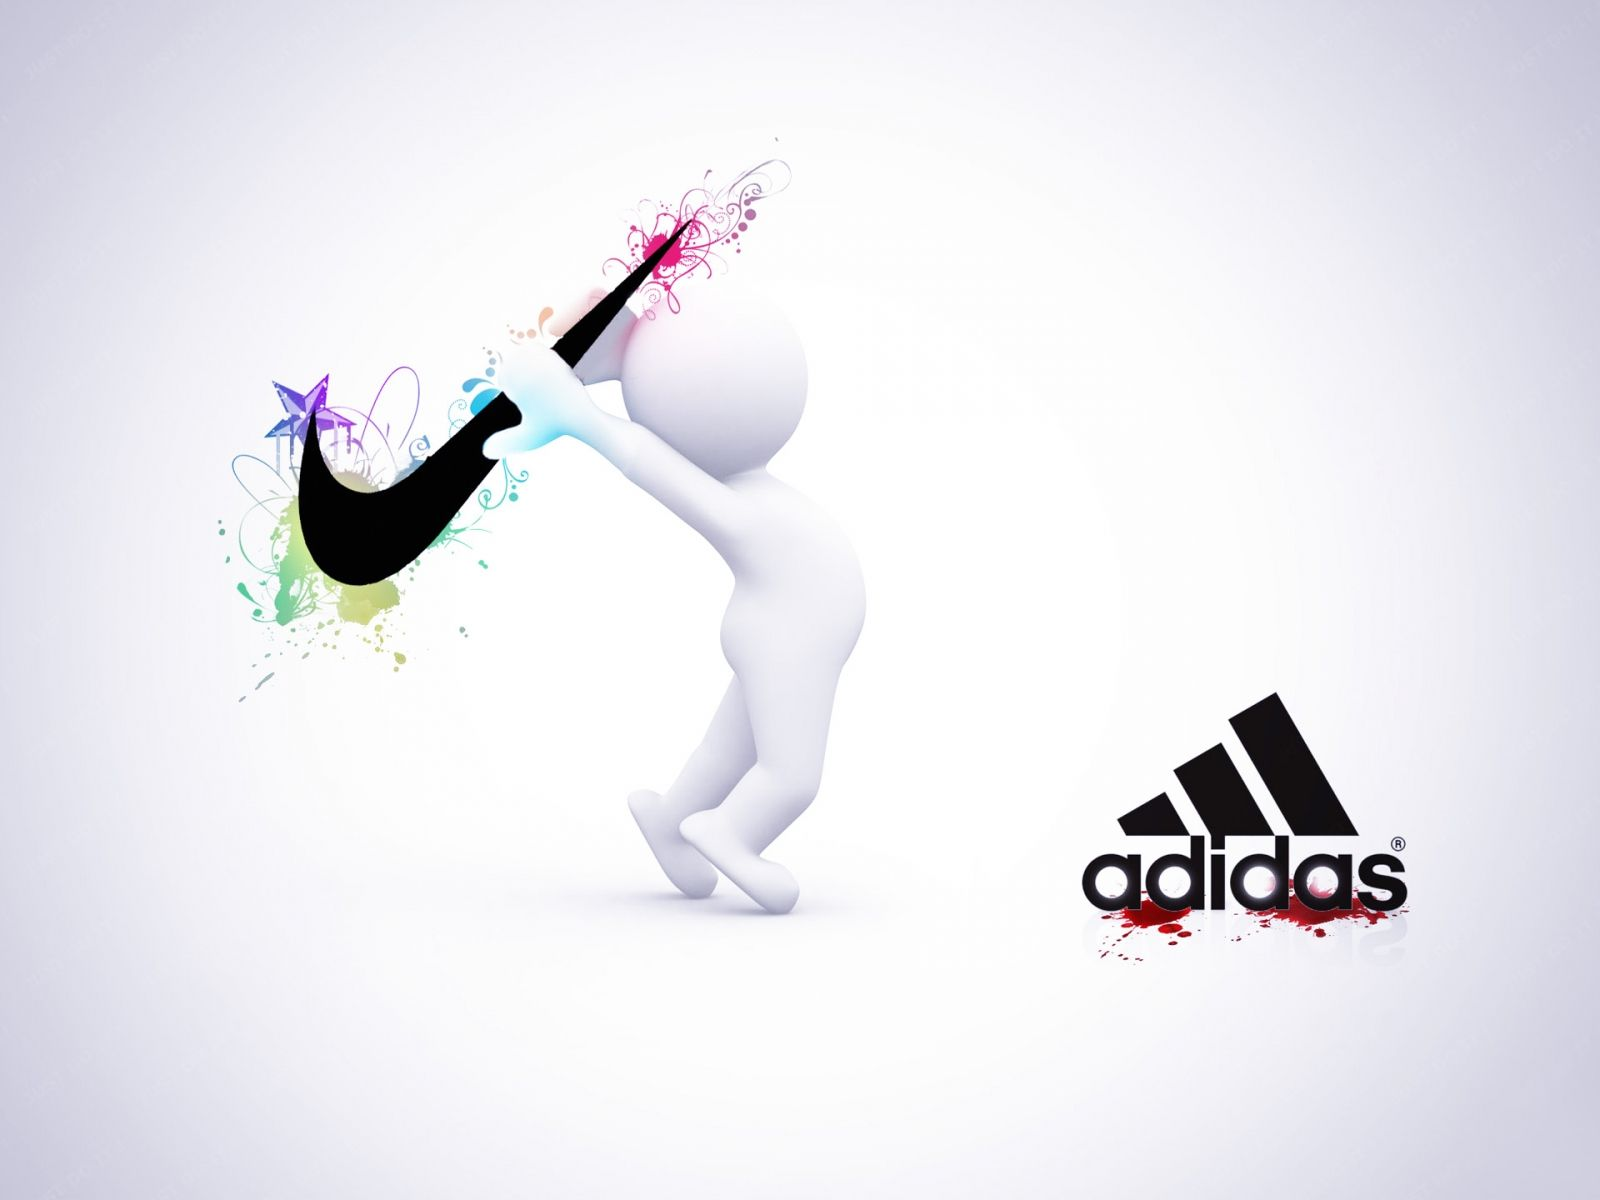 Wallpaper Nike Vs Adidas For 1600 X 1200 HD Wide Background Pictures